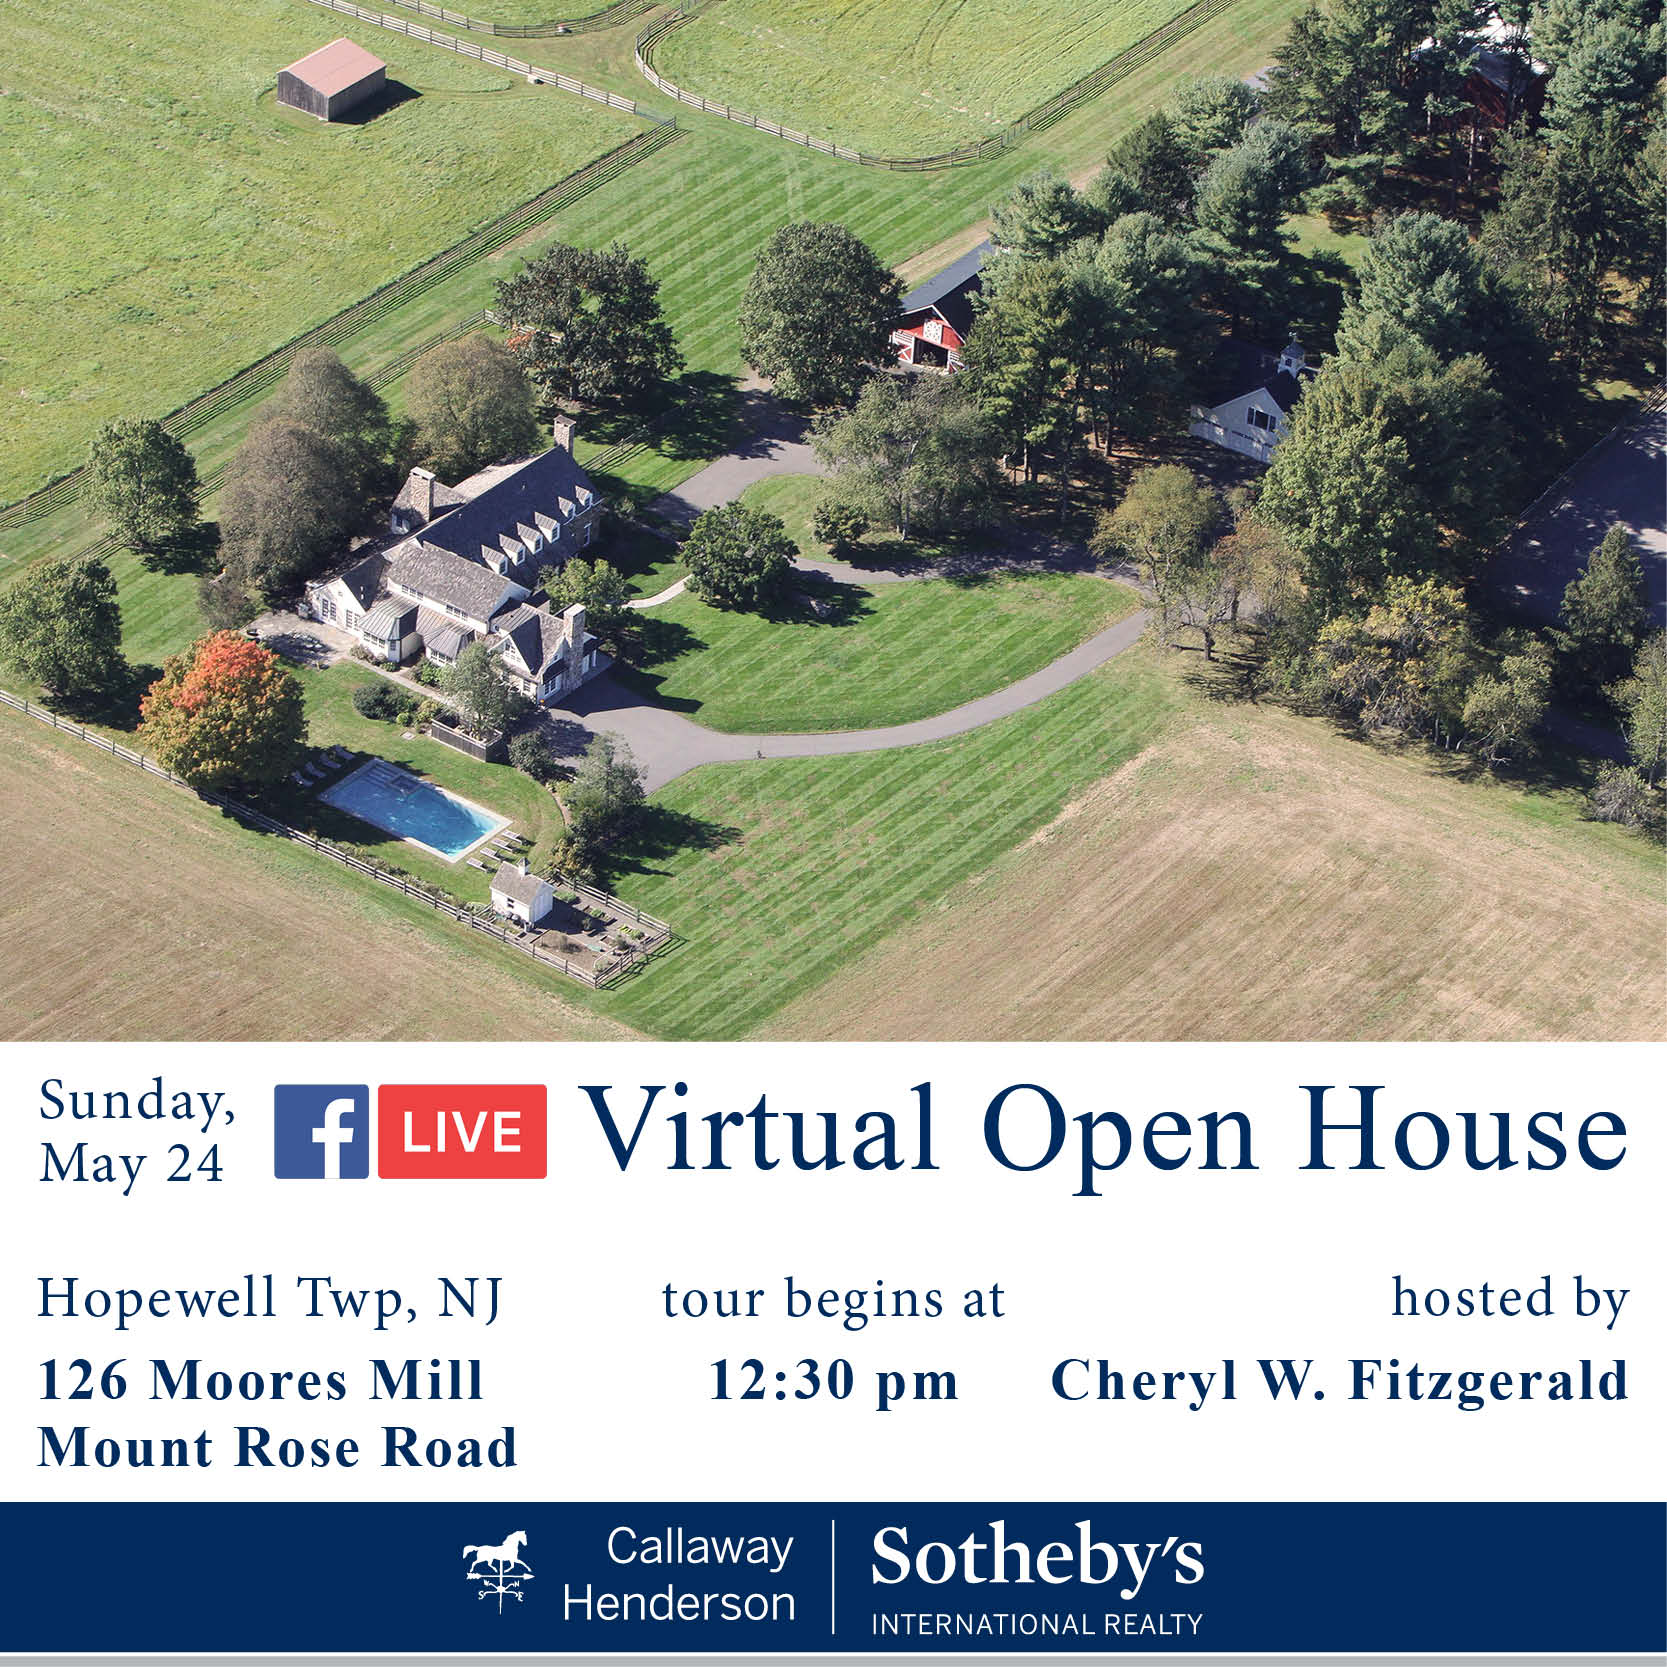 20200524 Live Virtual Open House Template-Moores Mill Mount Rose Road 126